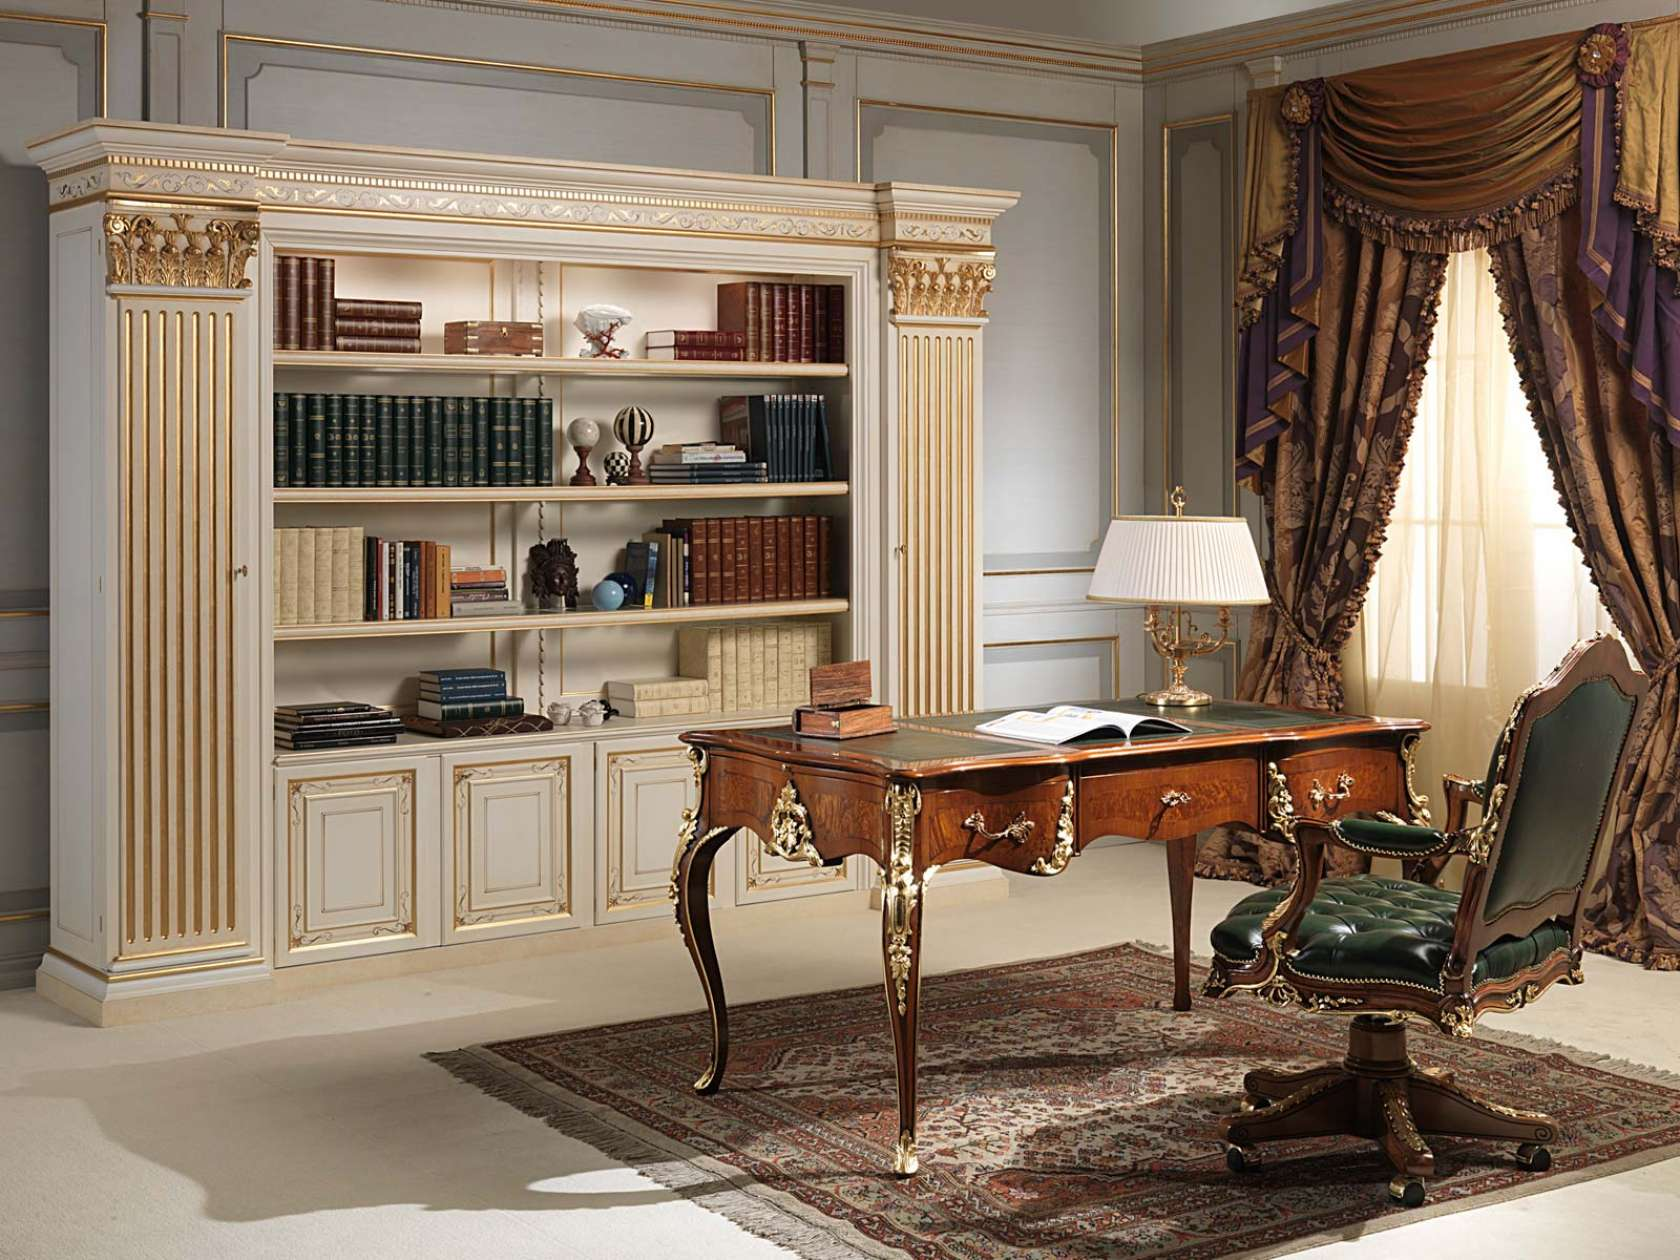 bureau et fauteuil louis xv avec biblioth que classique. Black Bedroom Furniture Sets. Home Design Ideas